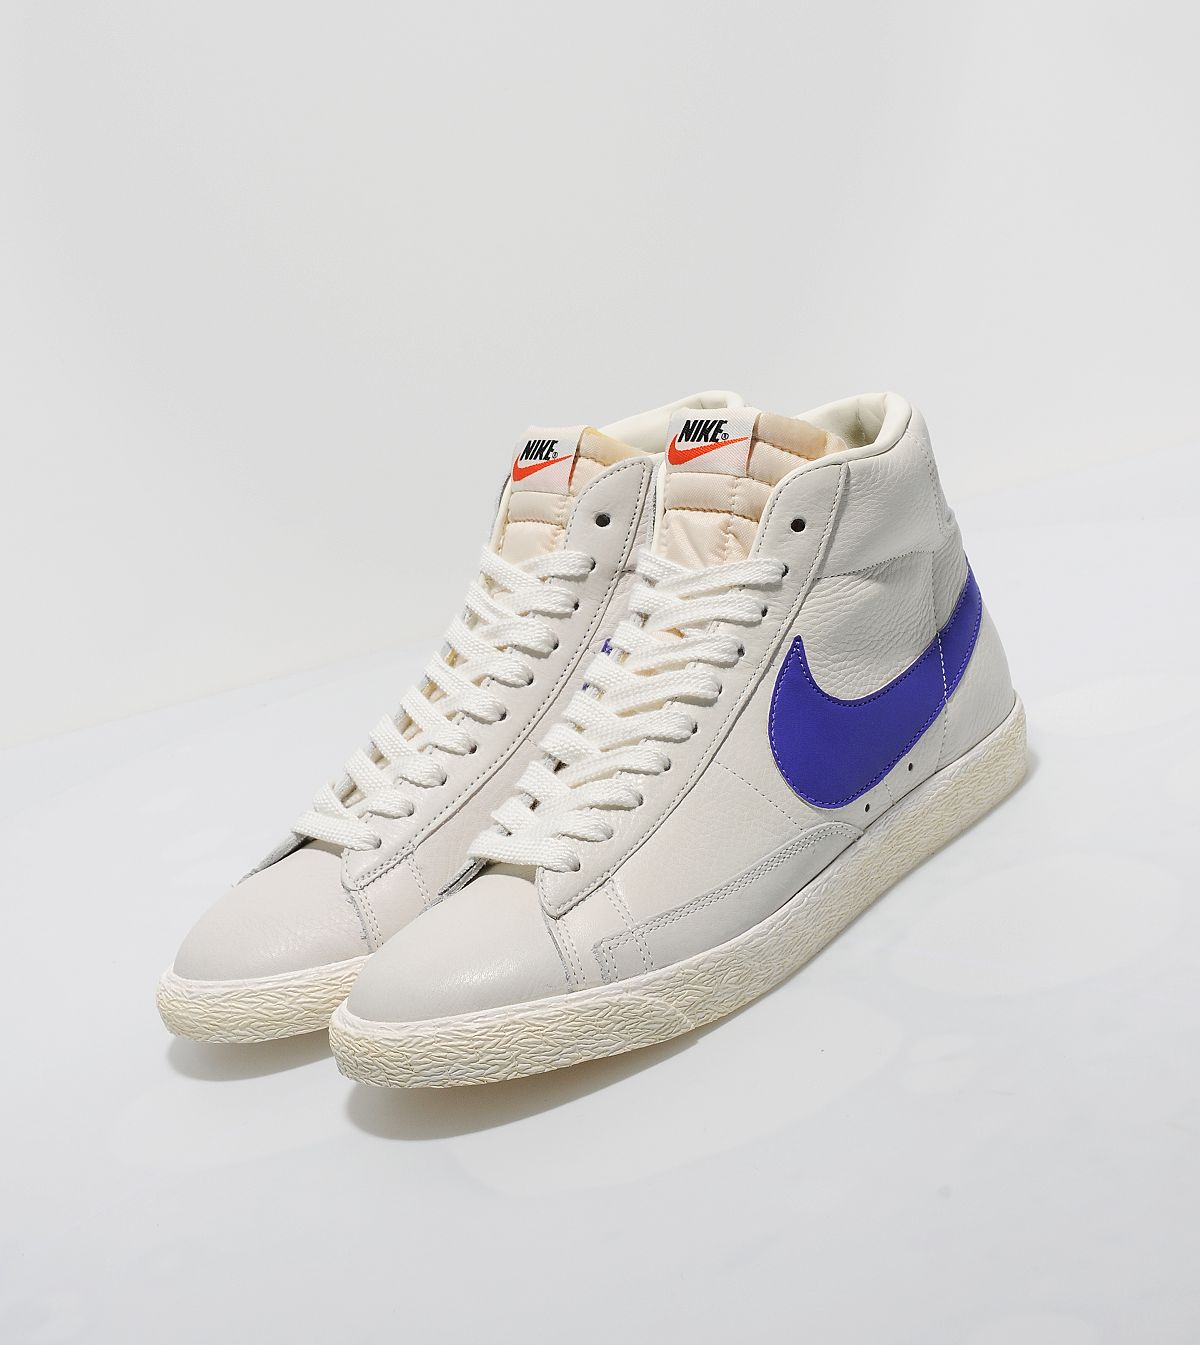 timberland homme pas chere - Nike Blazer High Vintage - Sail/Purple